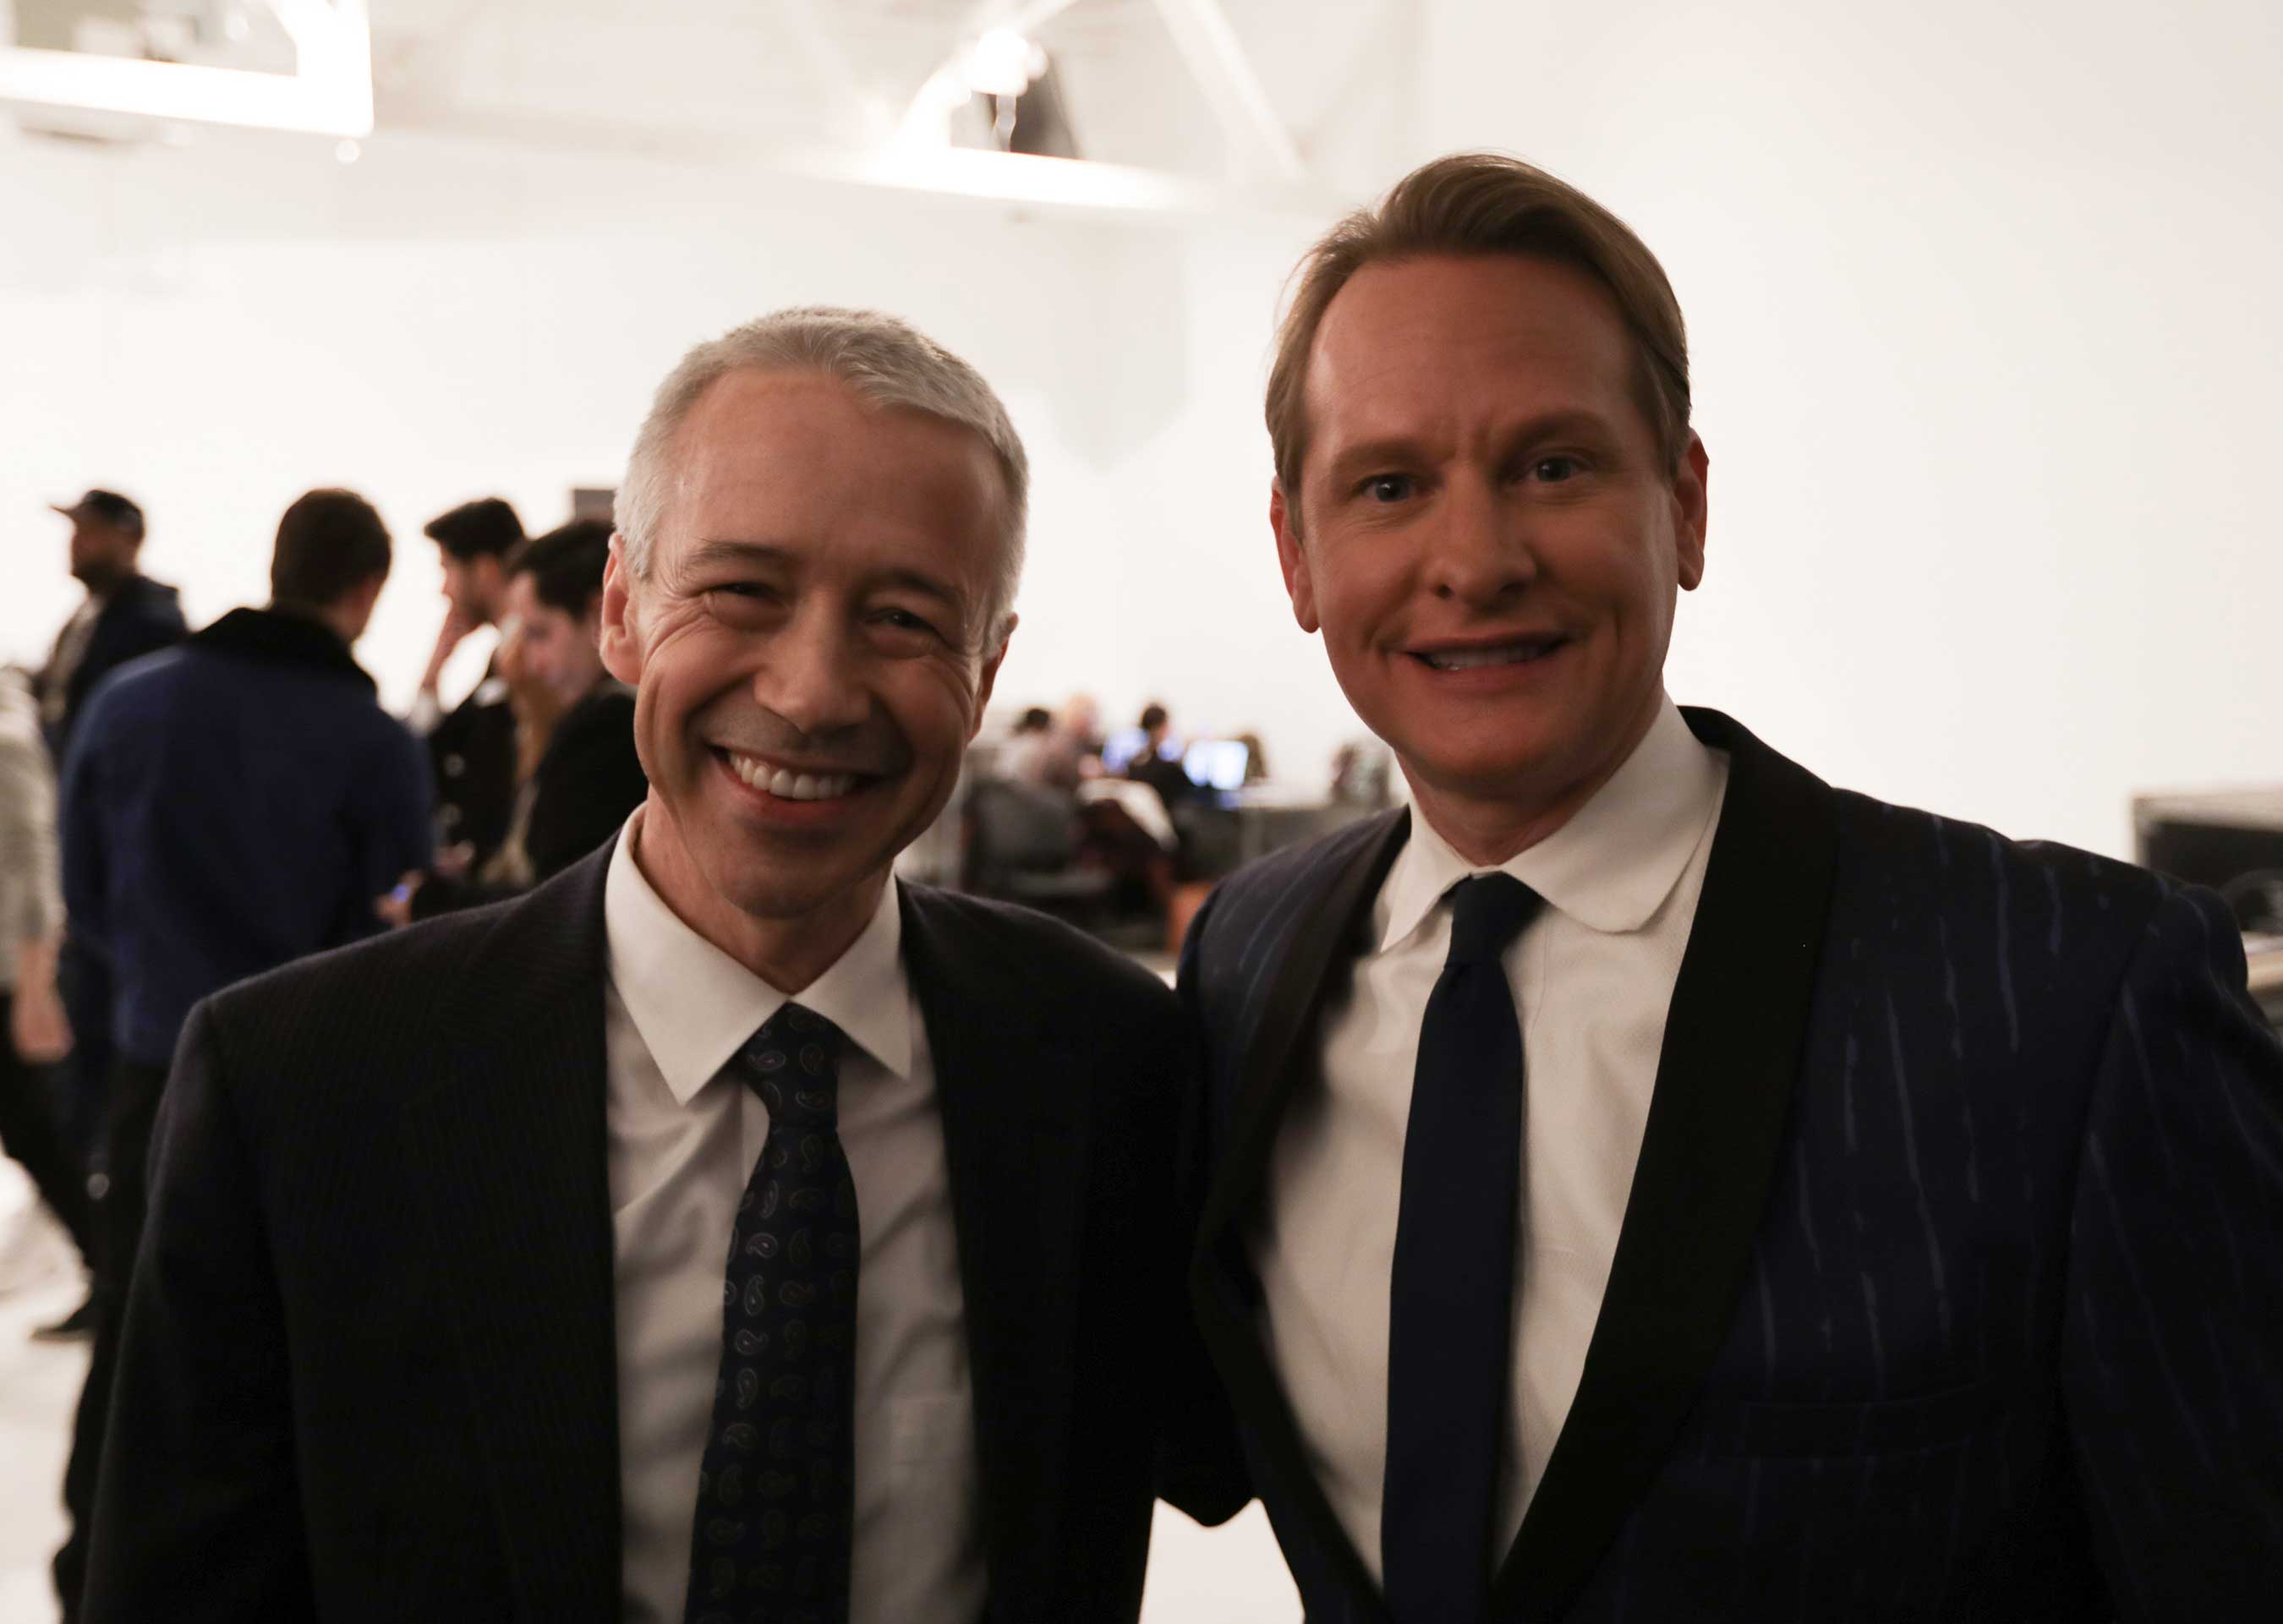 joaquin-duato-worldwide-chairman-pharmaceuticals-johnson-johnson-and-carson-kressley-at-the-blue-jacket-fashion-show-benefiting-the-prostate-cancer-foundation